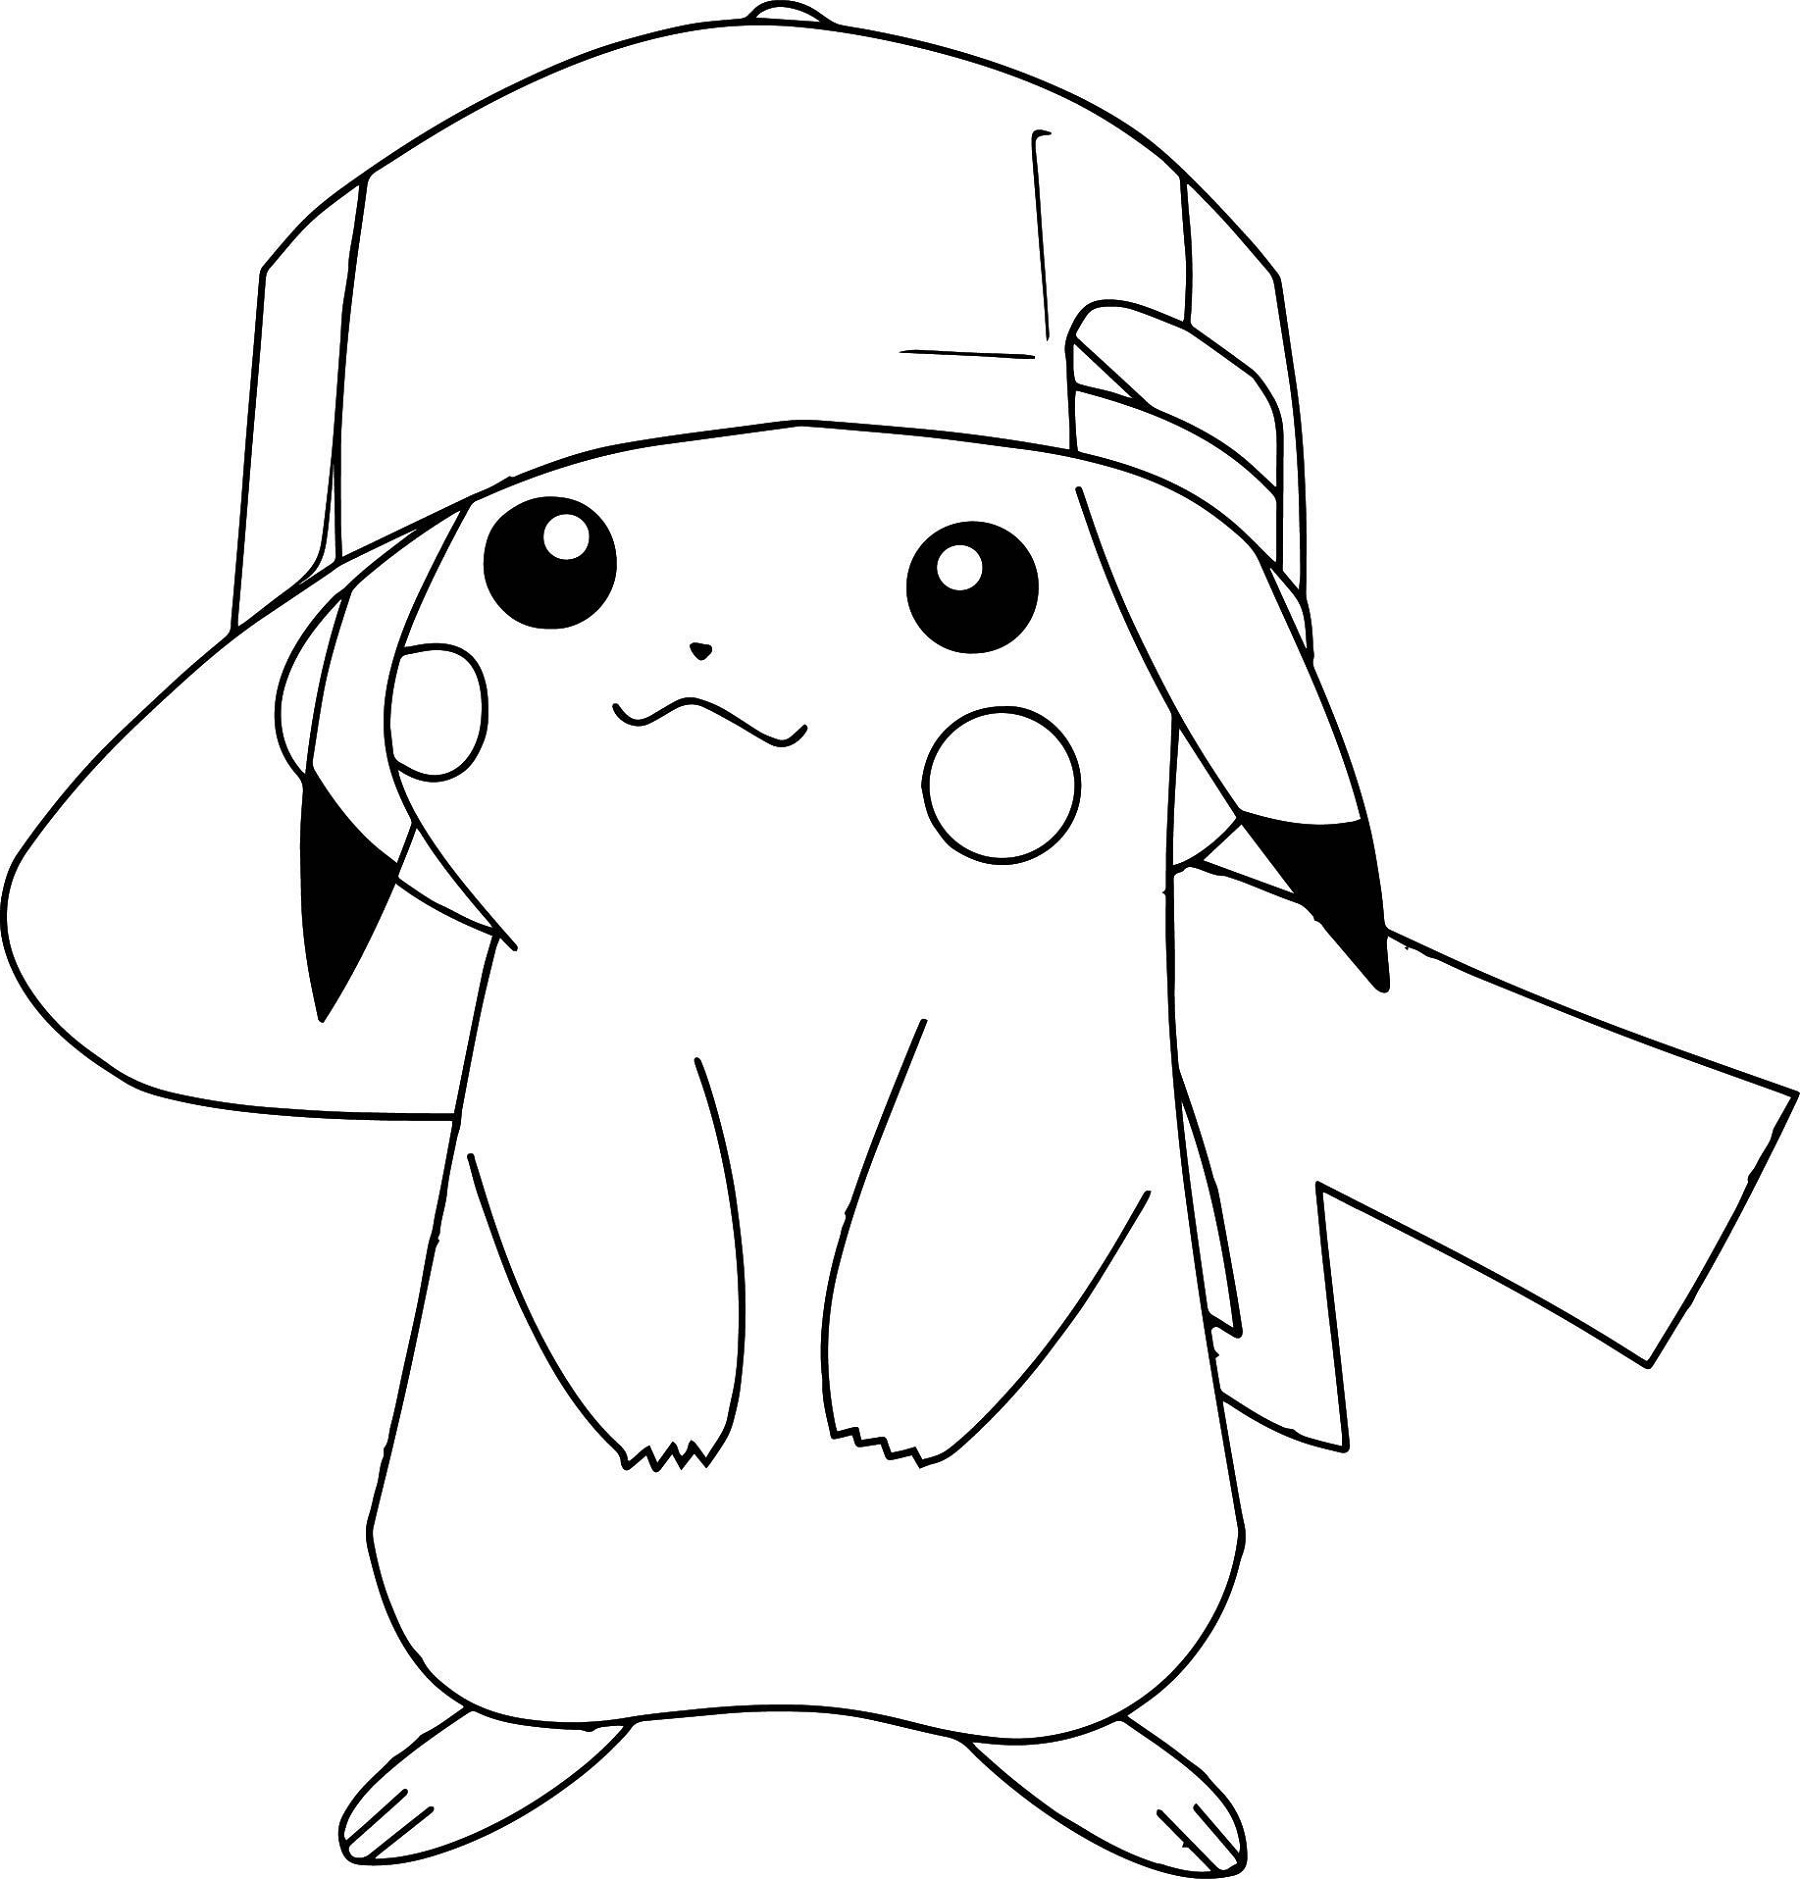 Adorable Pikachu Coloring Pages | 101 Coloring